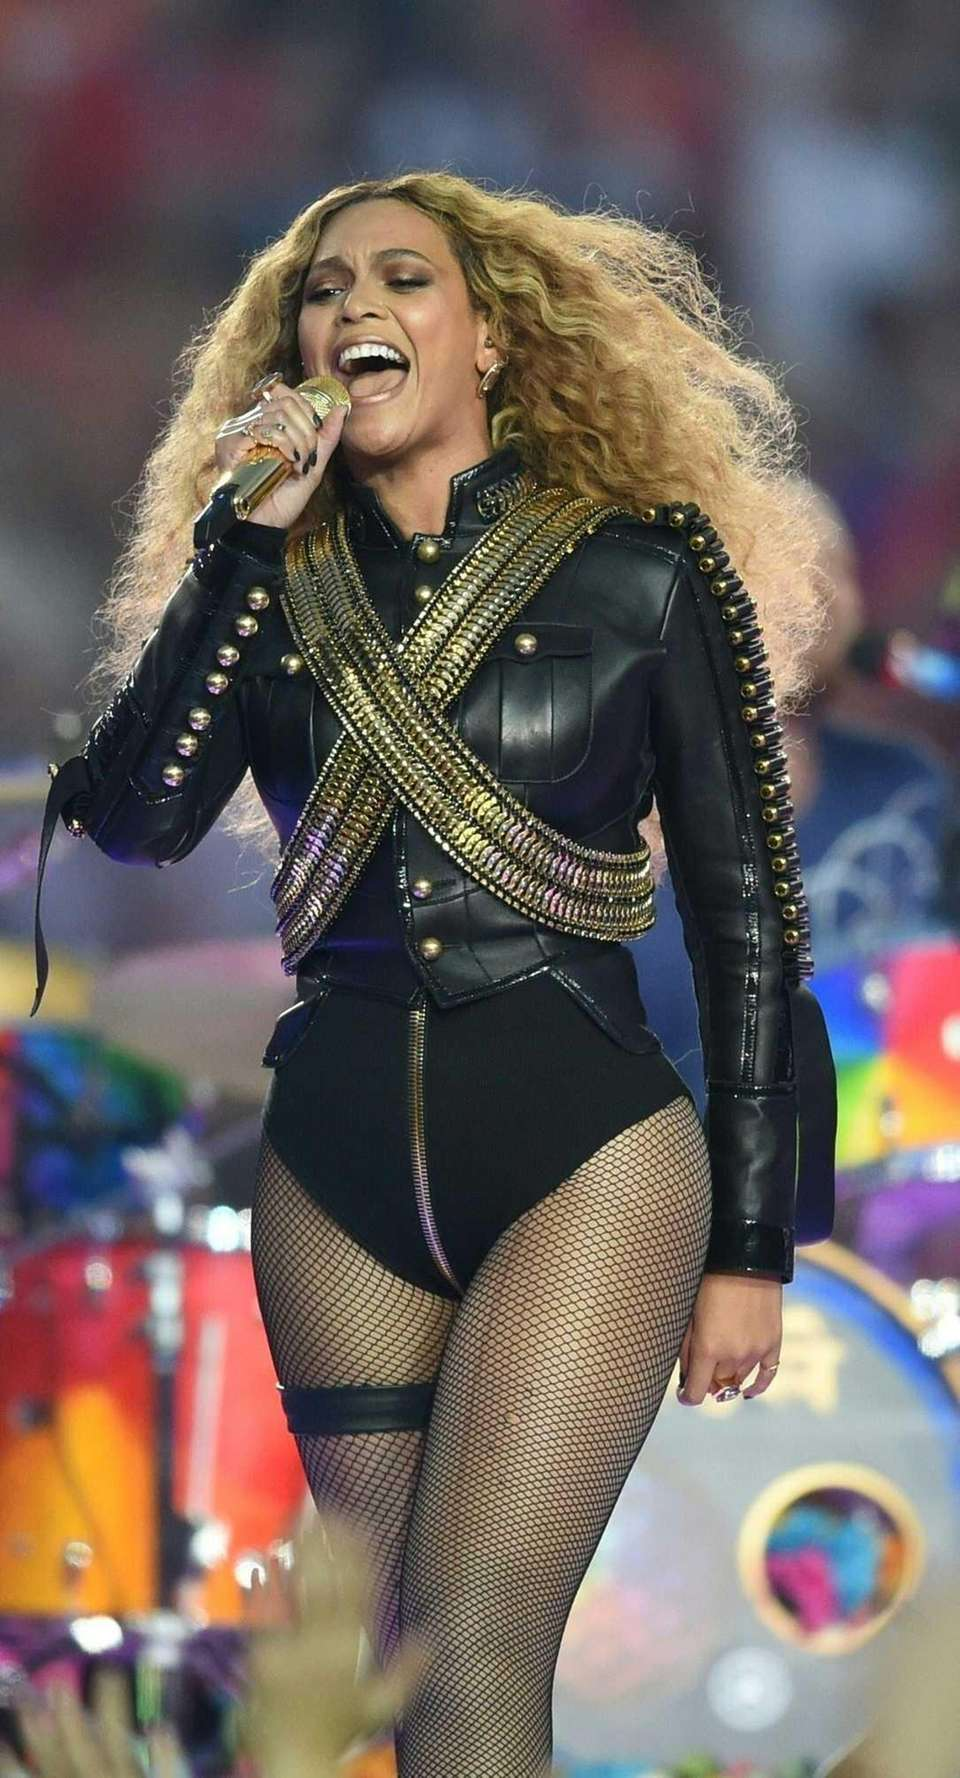 Beyoncé performs during Super Bowl 50 between the